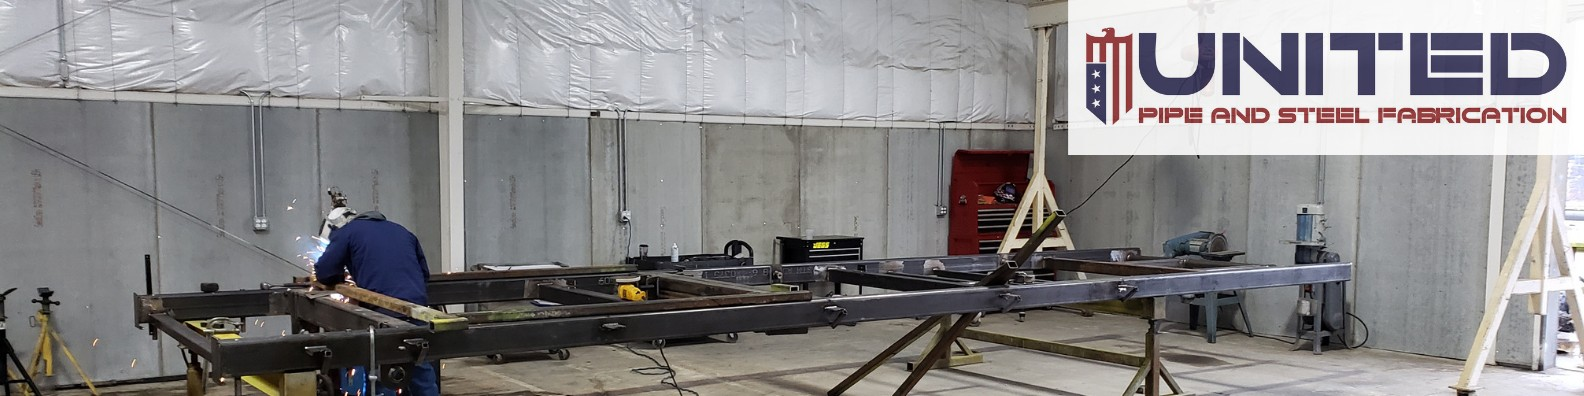 United Pipe and Steel Fabrication | LinkedIn